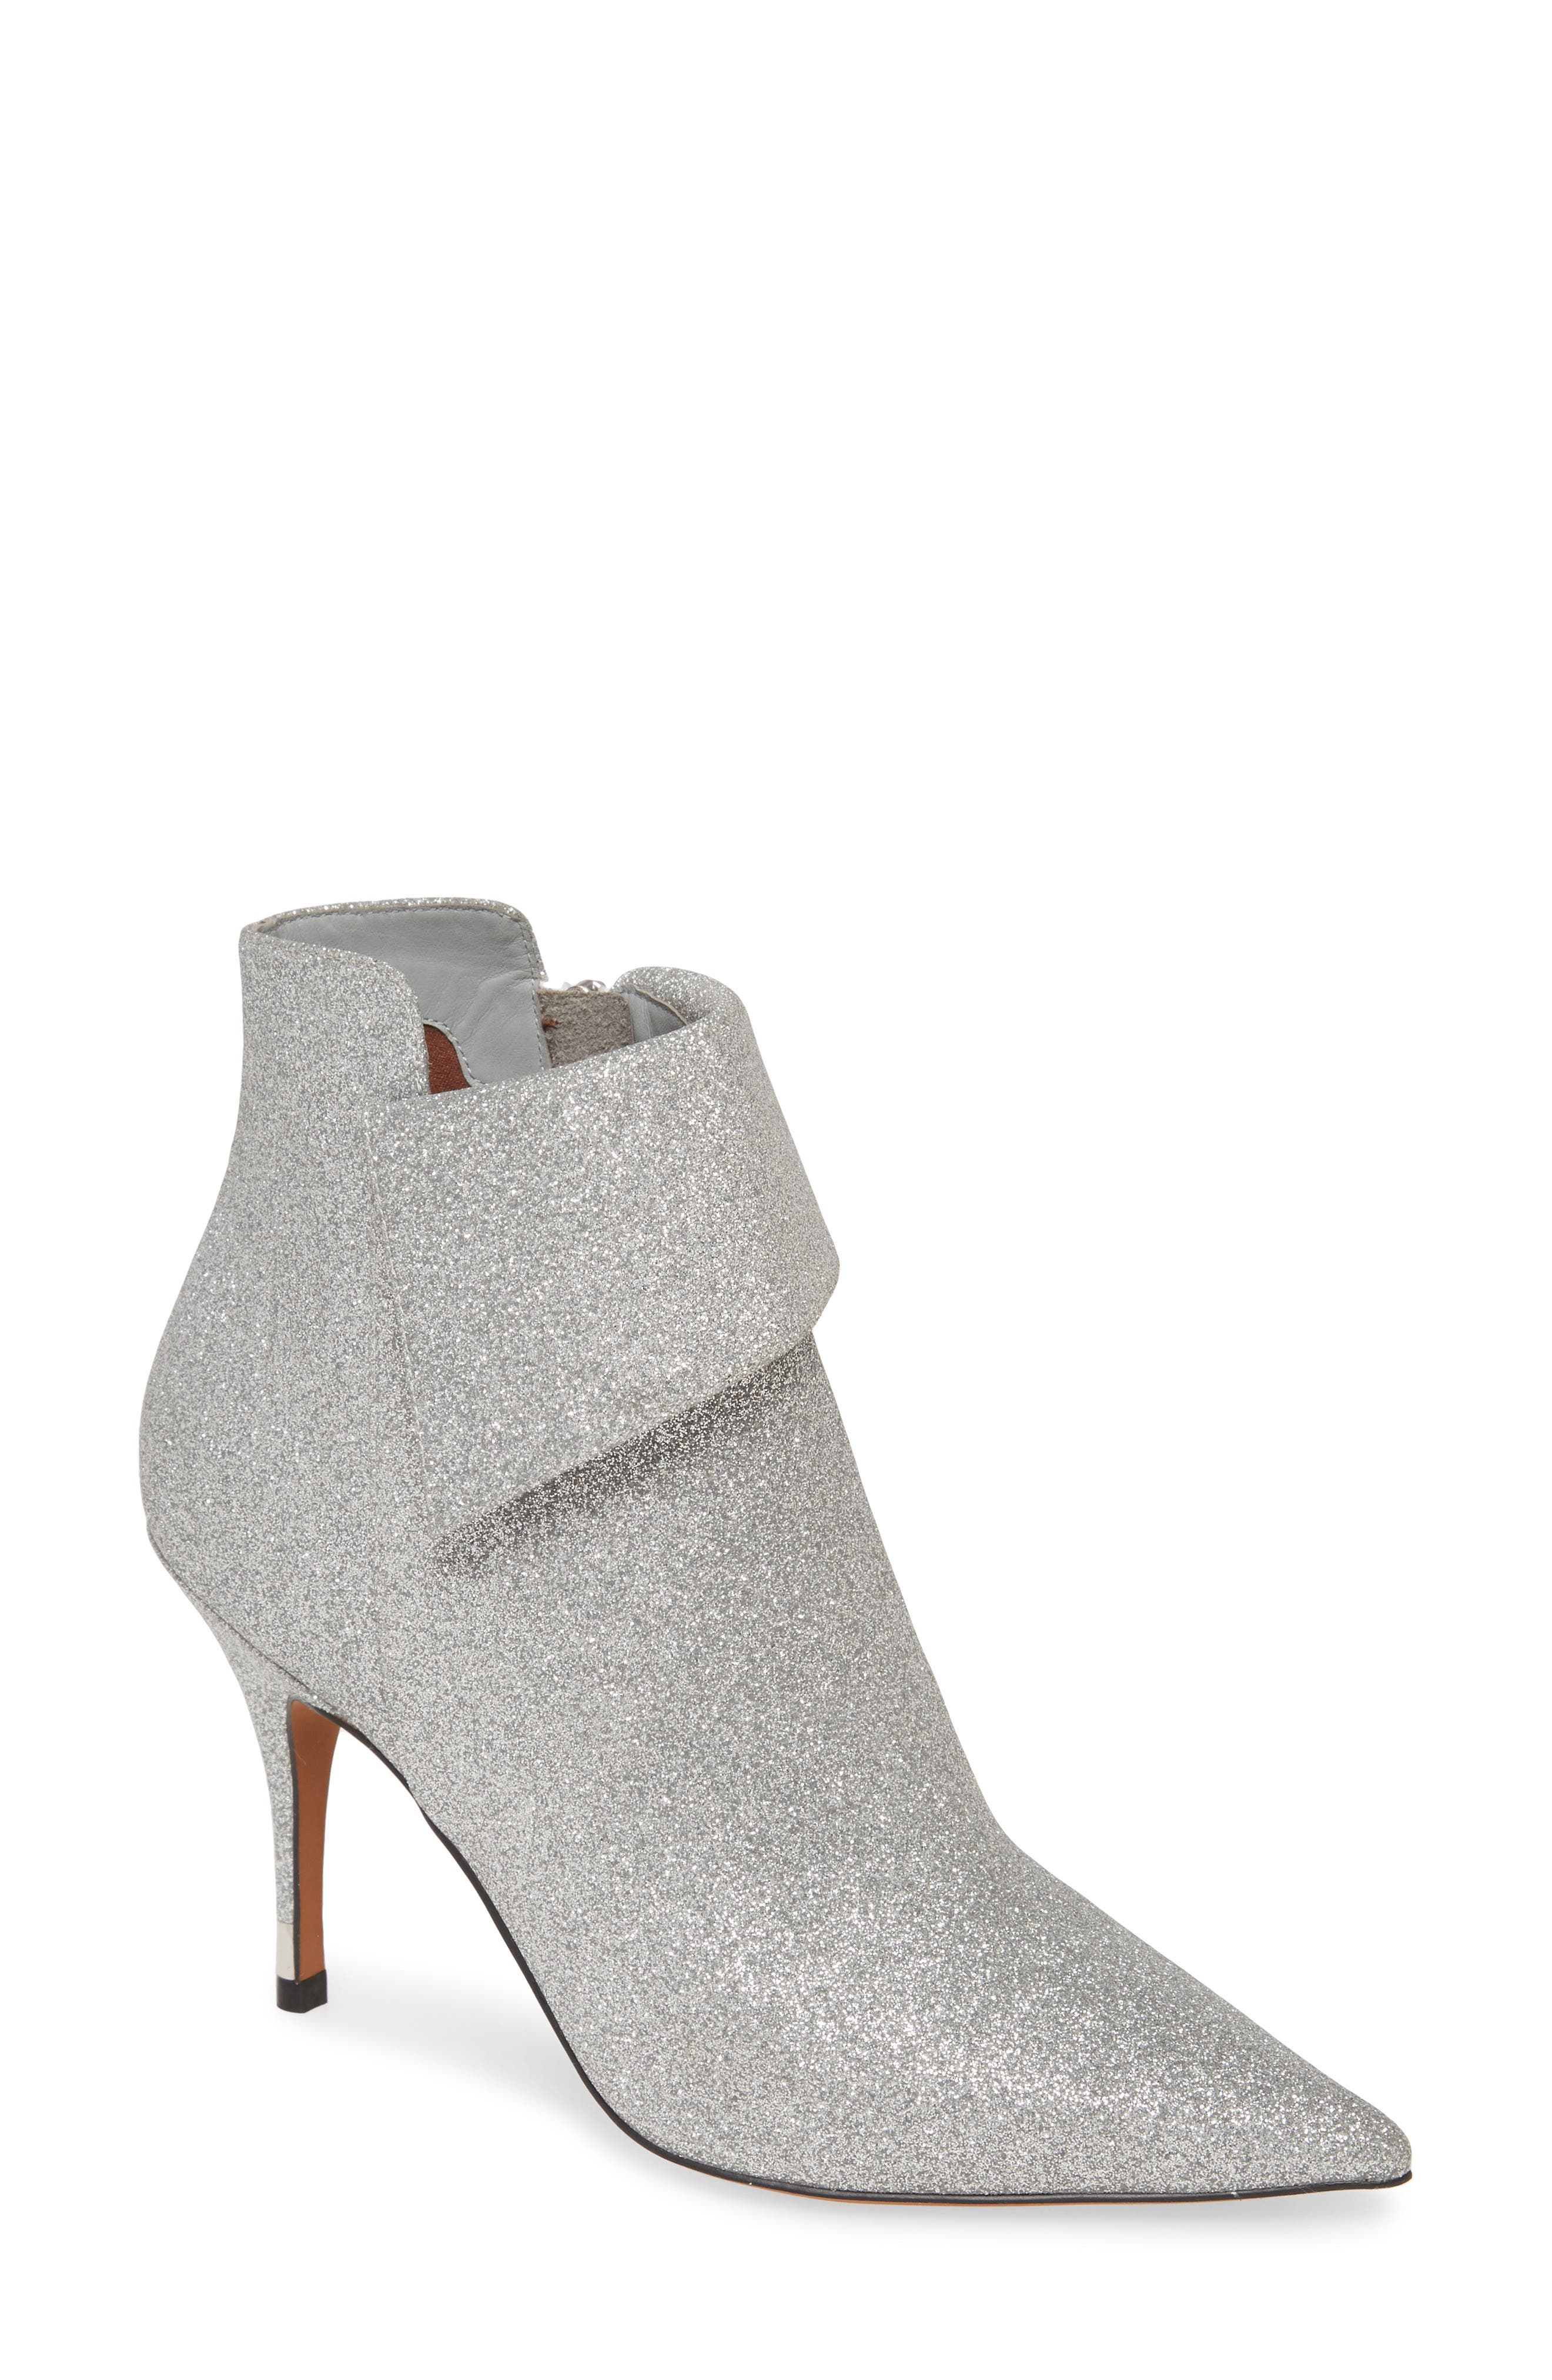 An angled fold-down cuff elevates the fashion-forward look of a shimmering pointy-toe bootie lifted by a gilt-accented slim heel. Style Name: Linea Paolo North Bootie (Women). Style Number: 5918327. Available in stores.